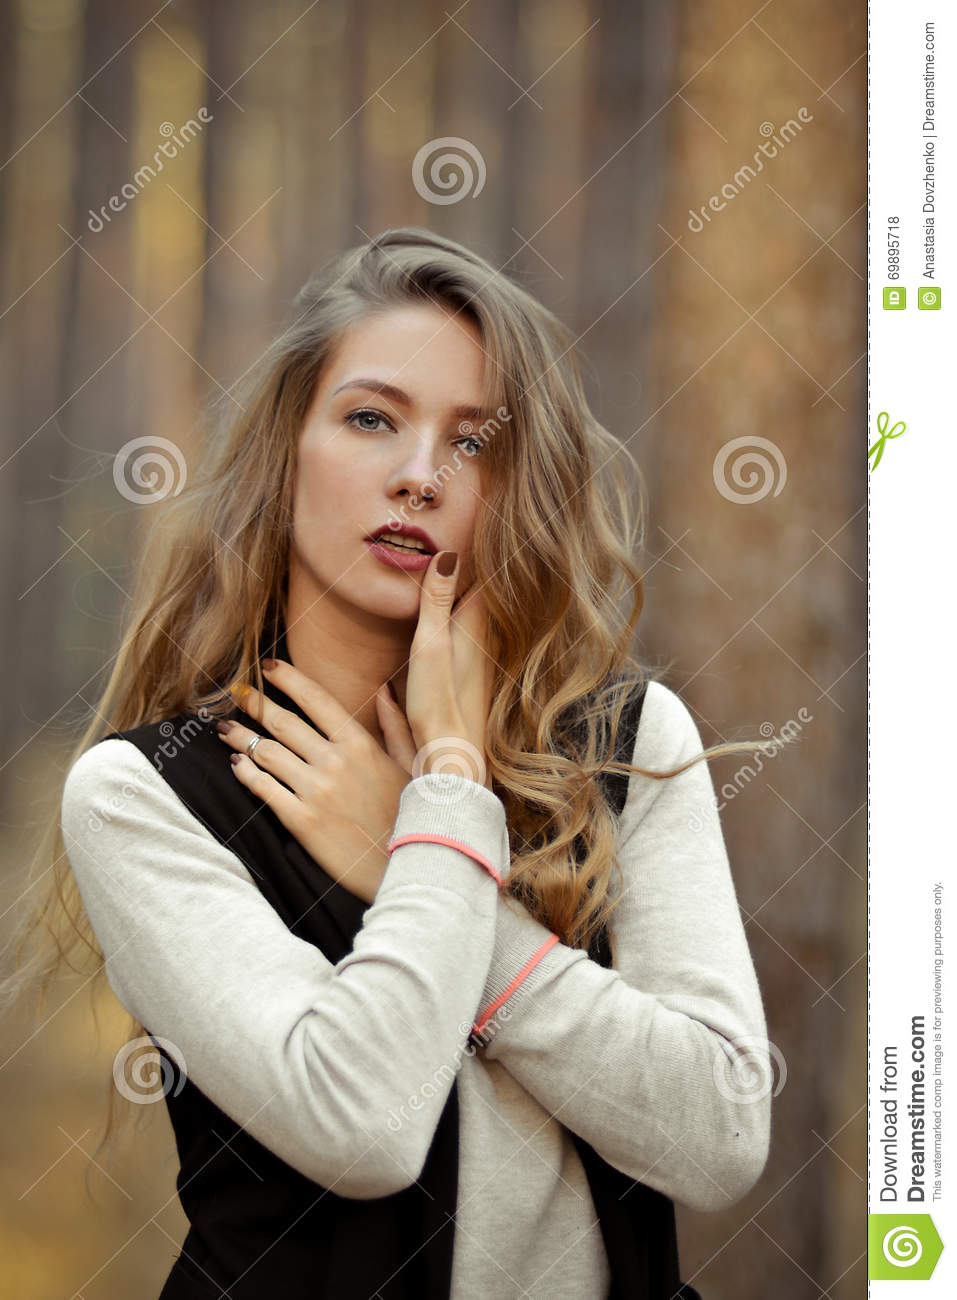 Sexual, seductive girl with open mouth,red lips, closed eyes